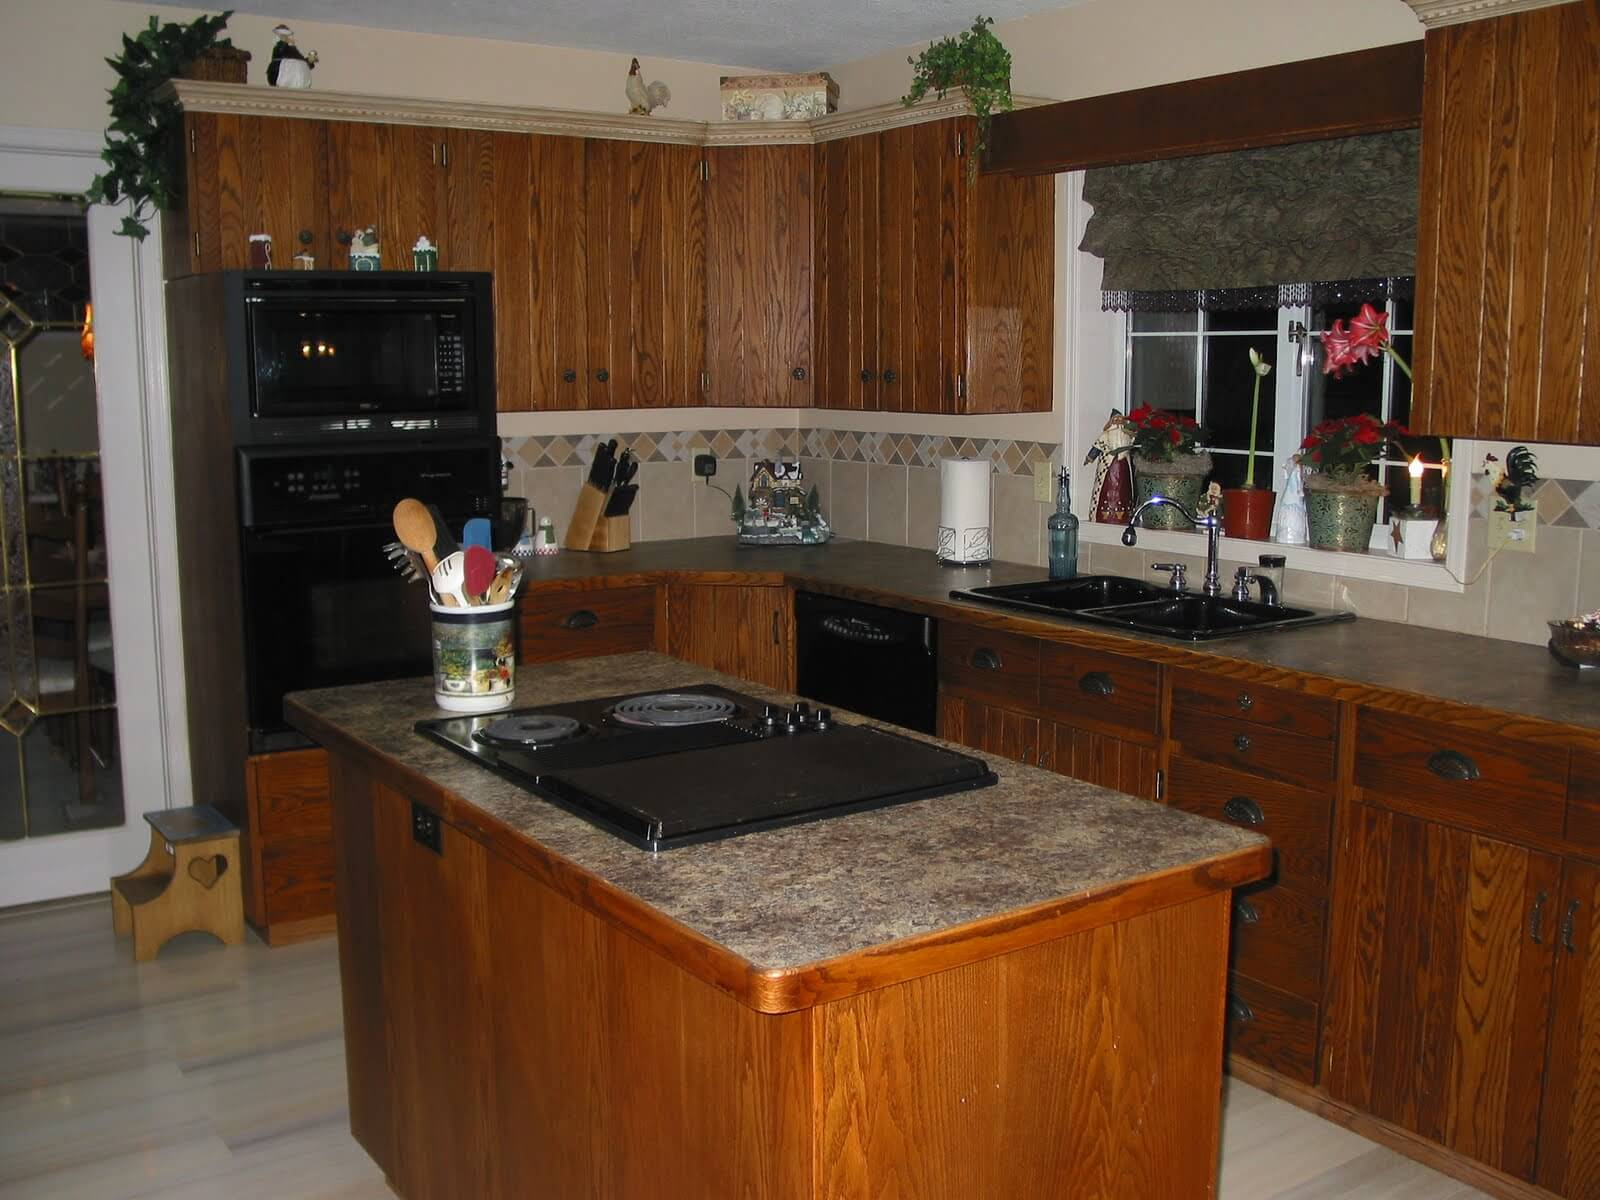 Simple kitchen island with hob